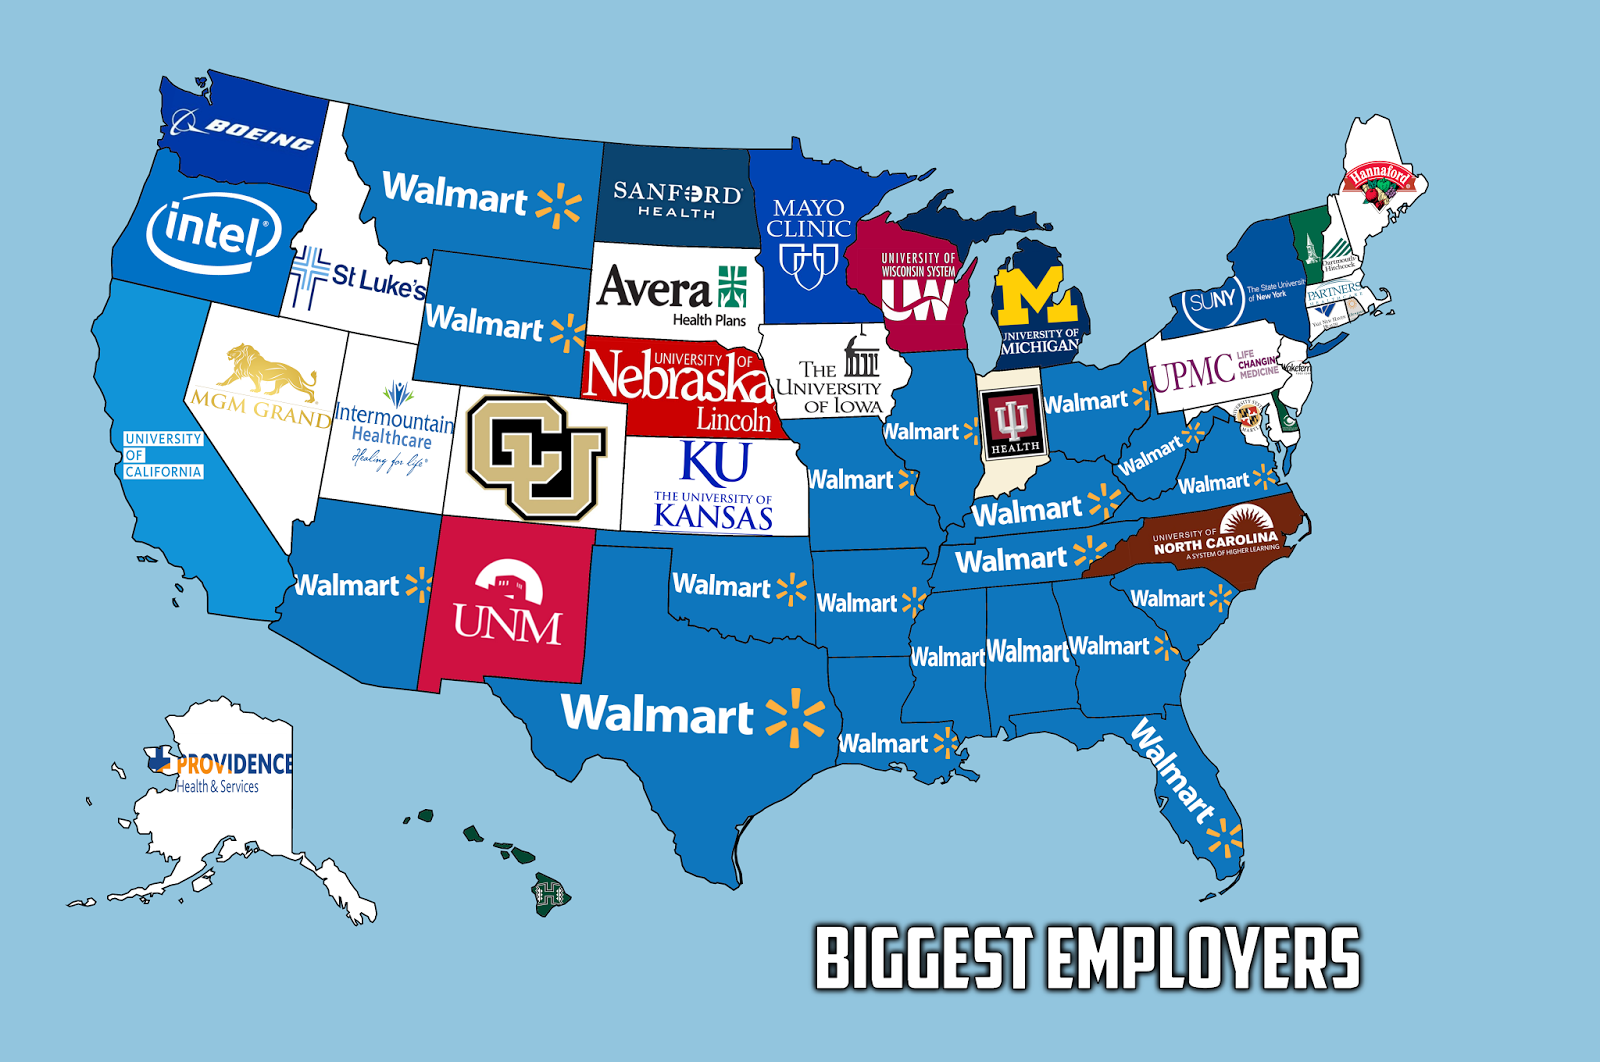 The biggest nongovernment employer in each US state Map